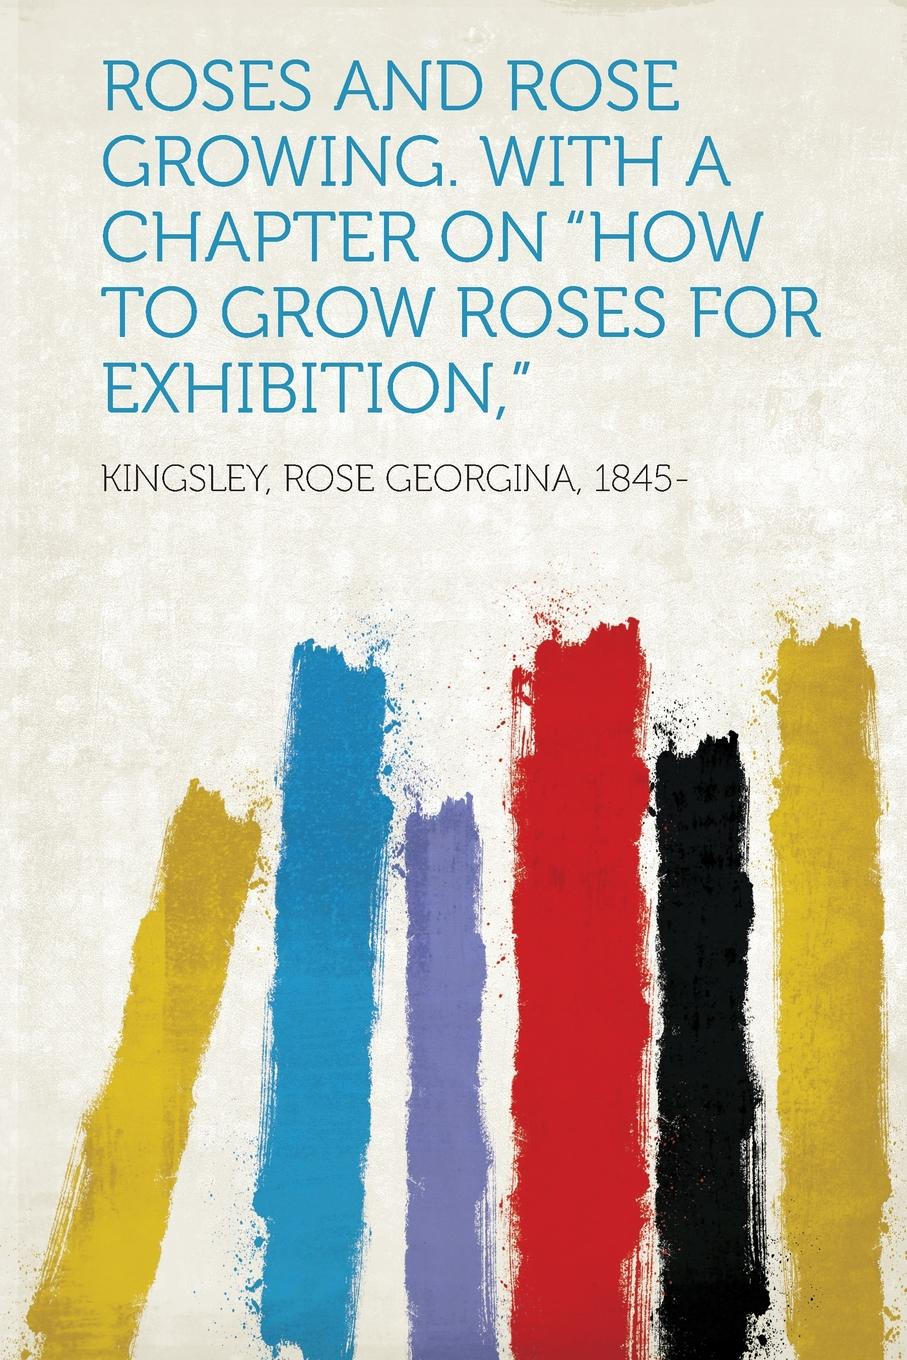 Kingsley Rose Georgina 1845- Roses and Rose Growing. With a Chapter on How to Grow Roses for Exhibition, the rose the history of the world's favourite flower in 40 captivating roses with classic texts and rare beautiful prints